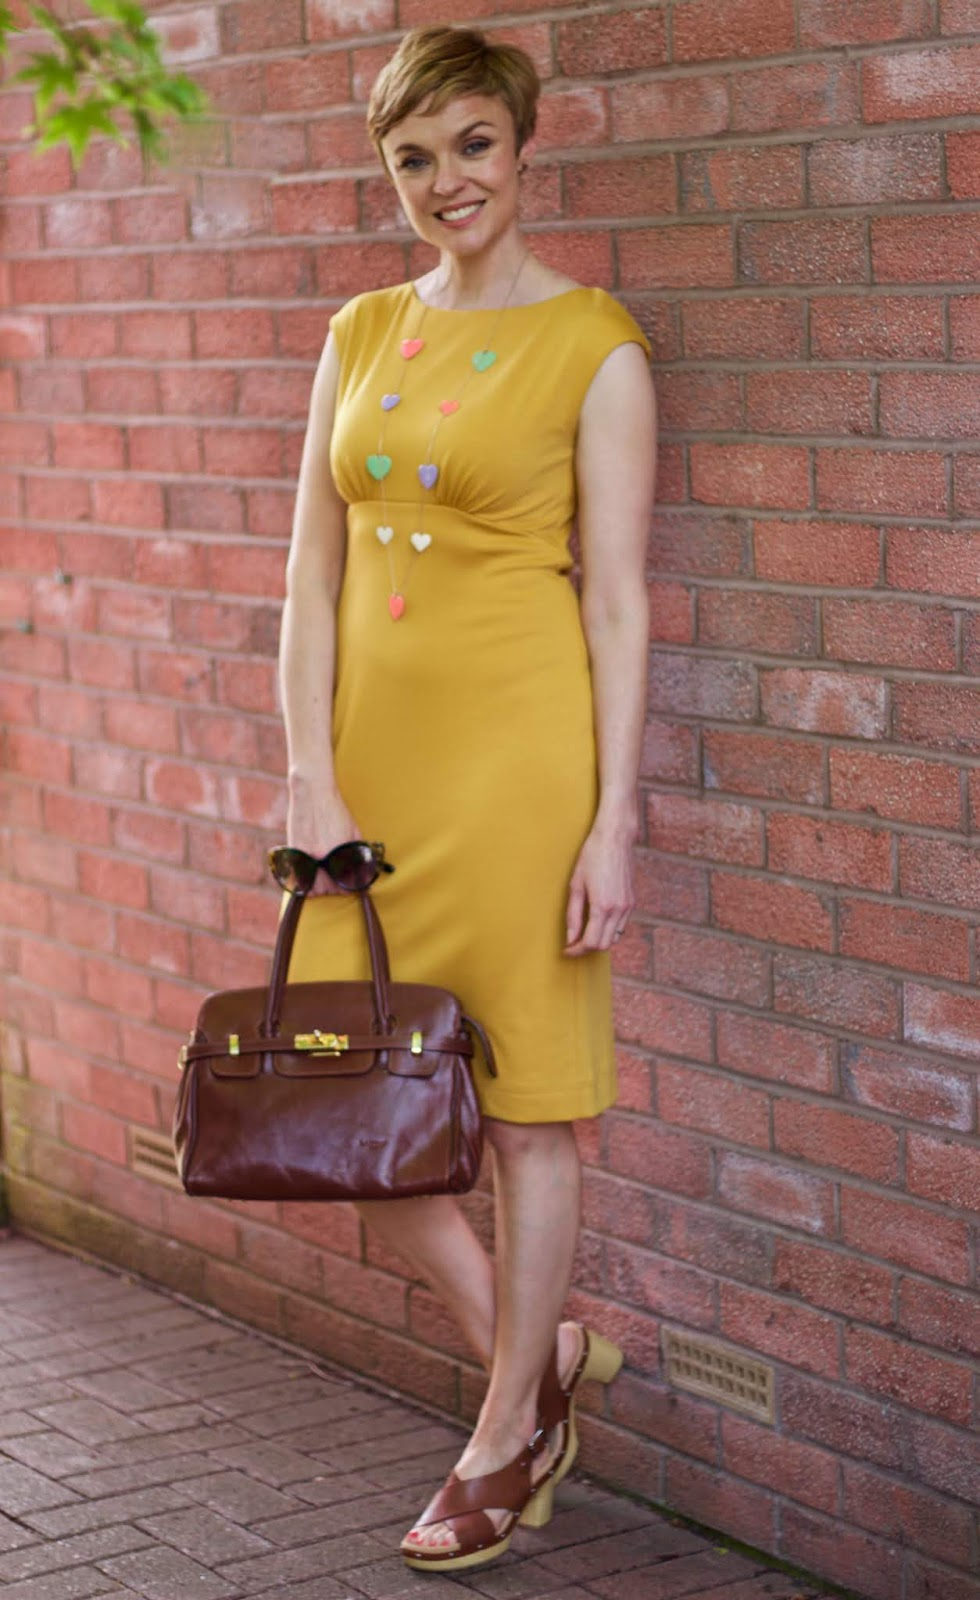 Artisan Gold Pippa Dress, Alie Street | Workwear |Fake Fabulous